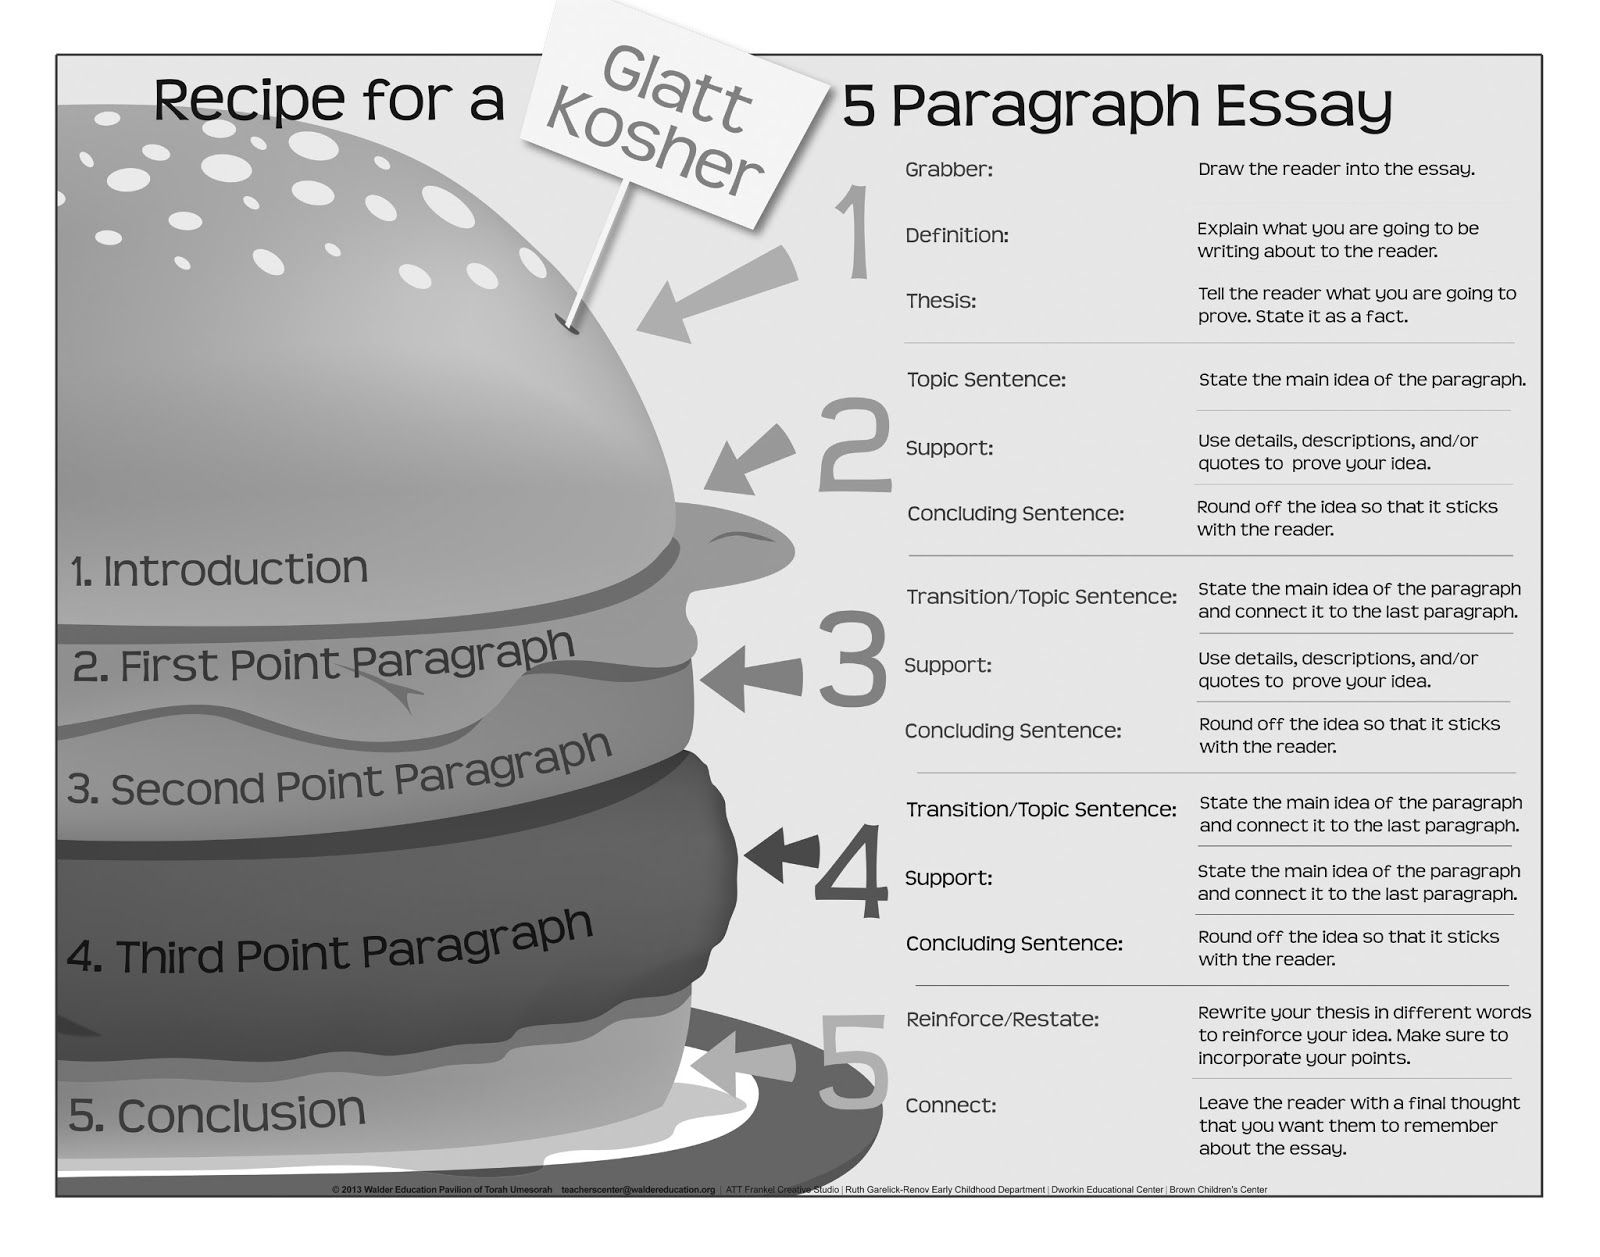 teaching 5 paragraph essay outline Help your students write better essays with this structured essay outline resource this free teaching resource includes two different five paragraph essay outlines.